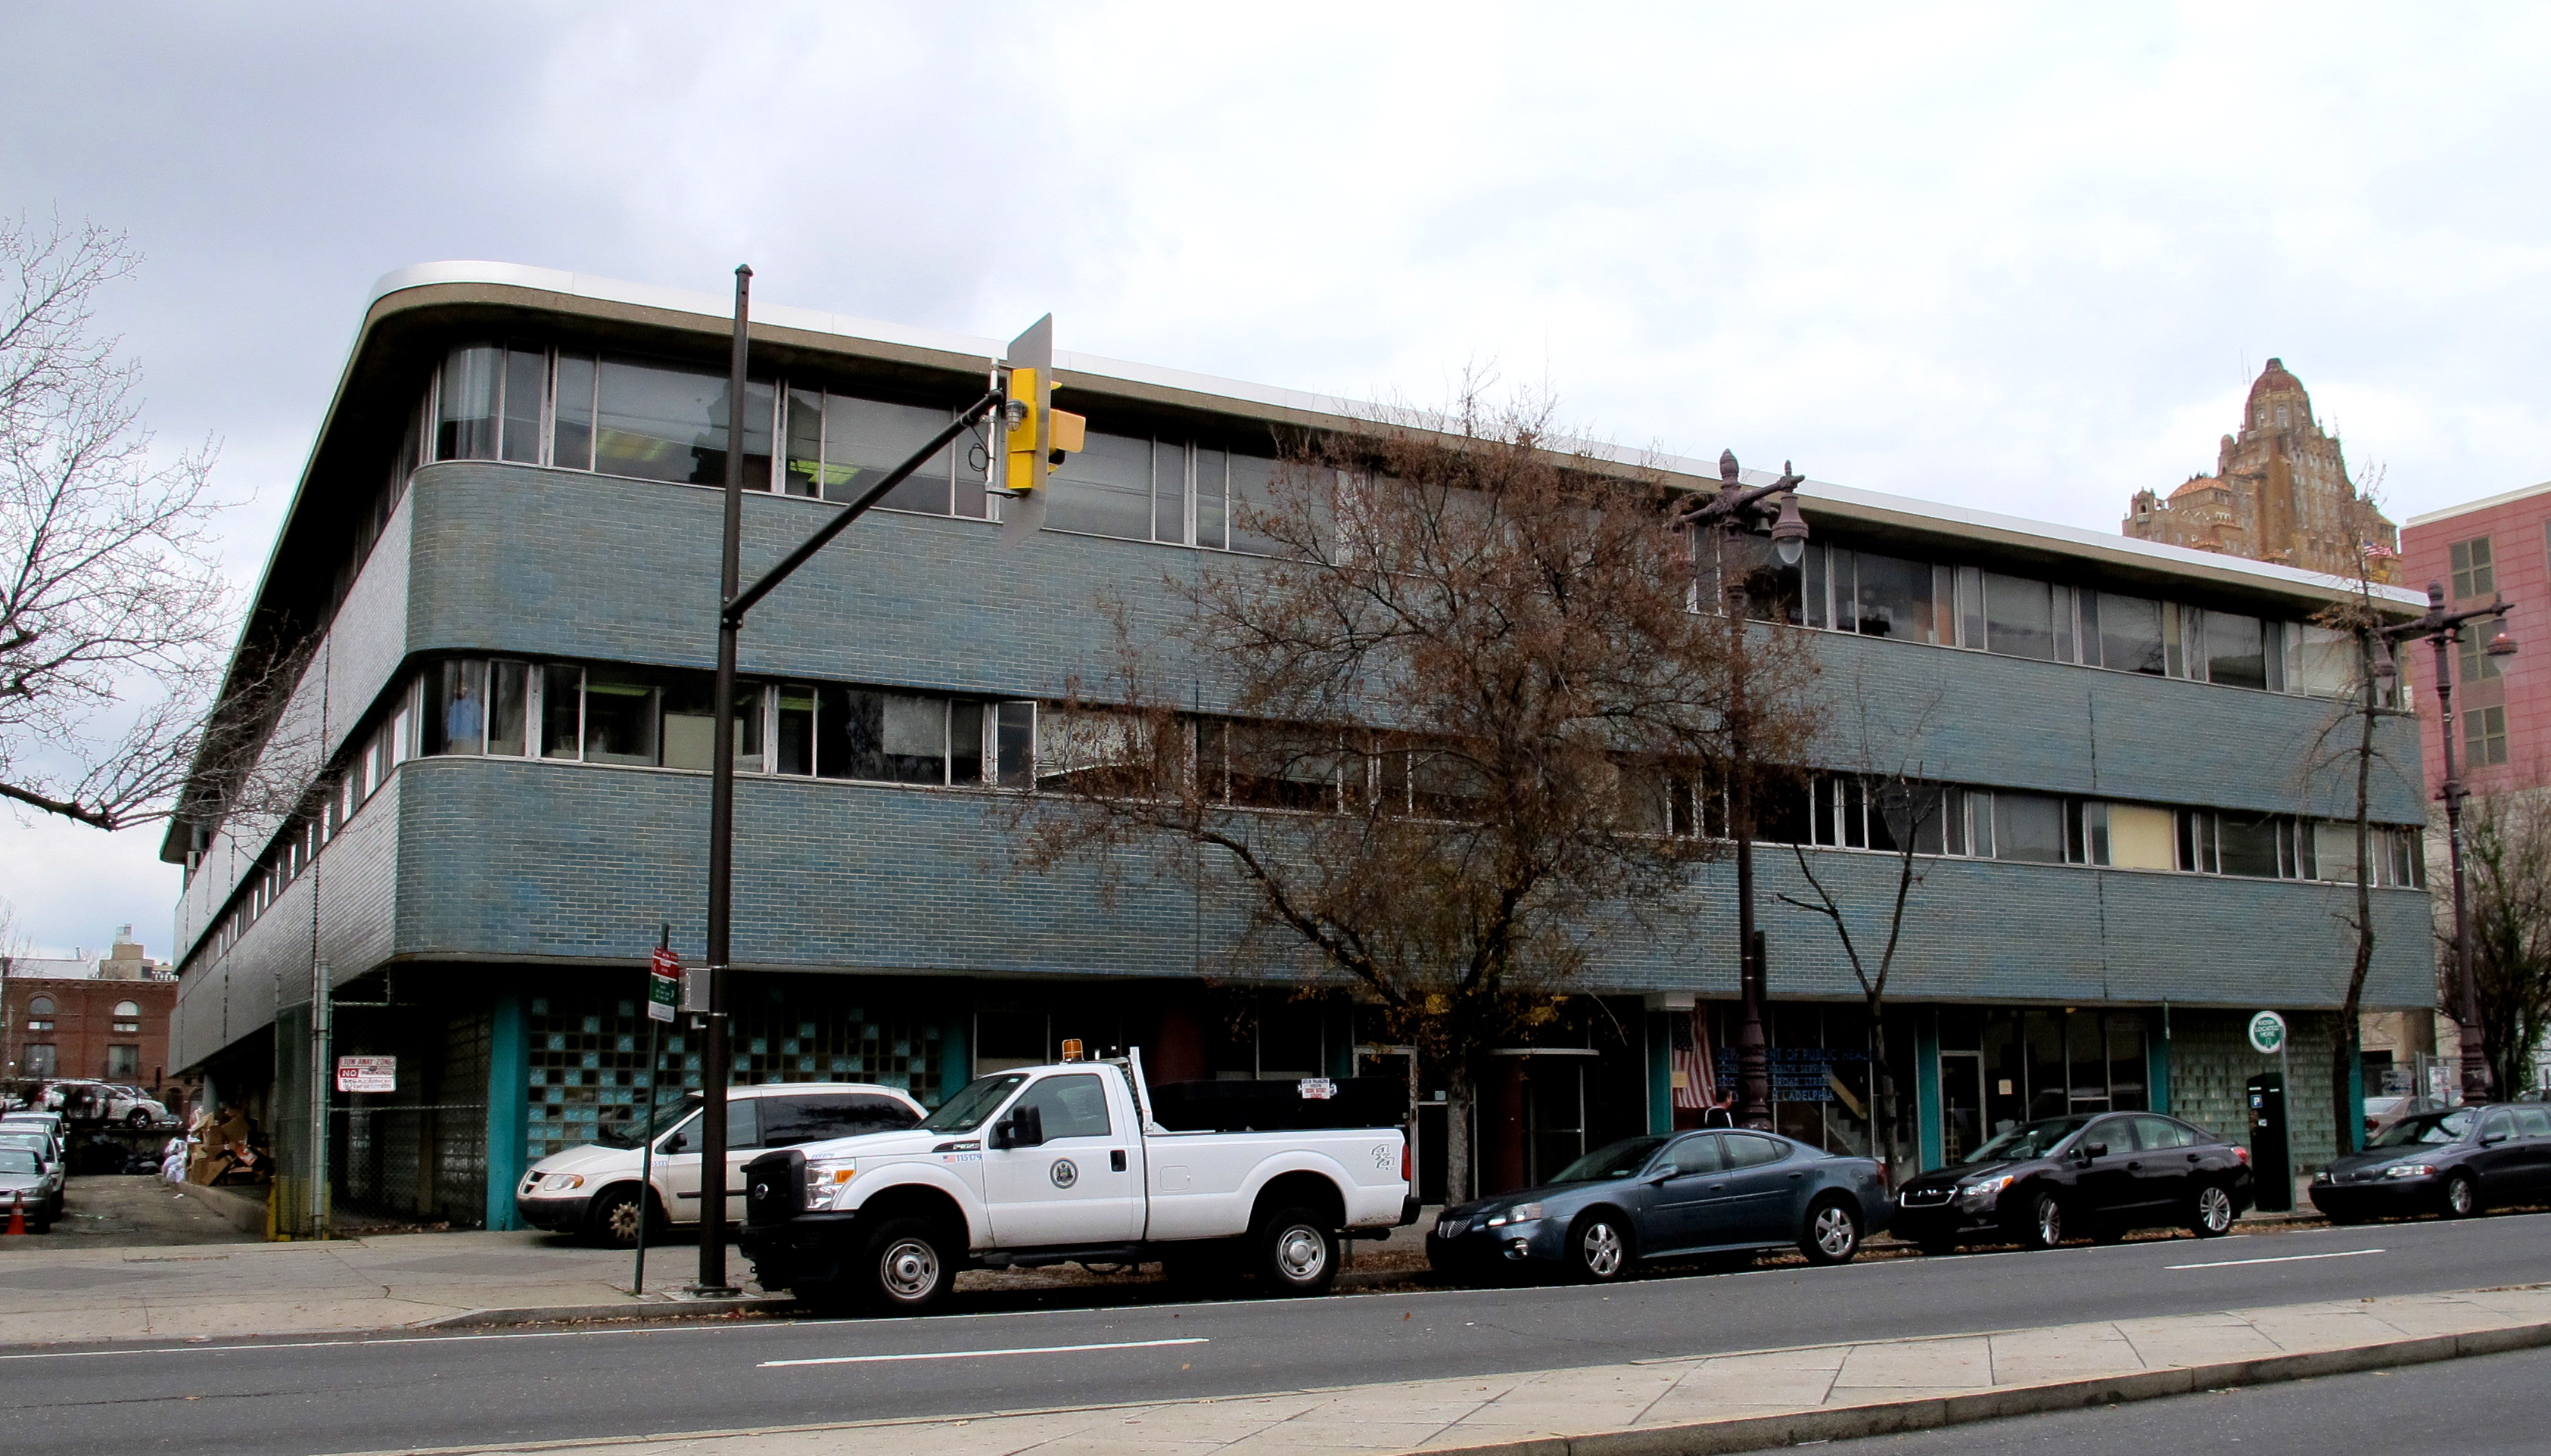 Health District #1, Broad and Lombard streets. Built 1959.